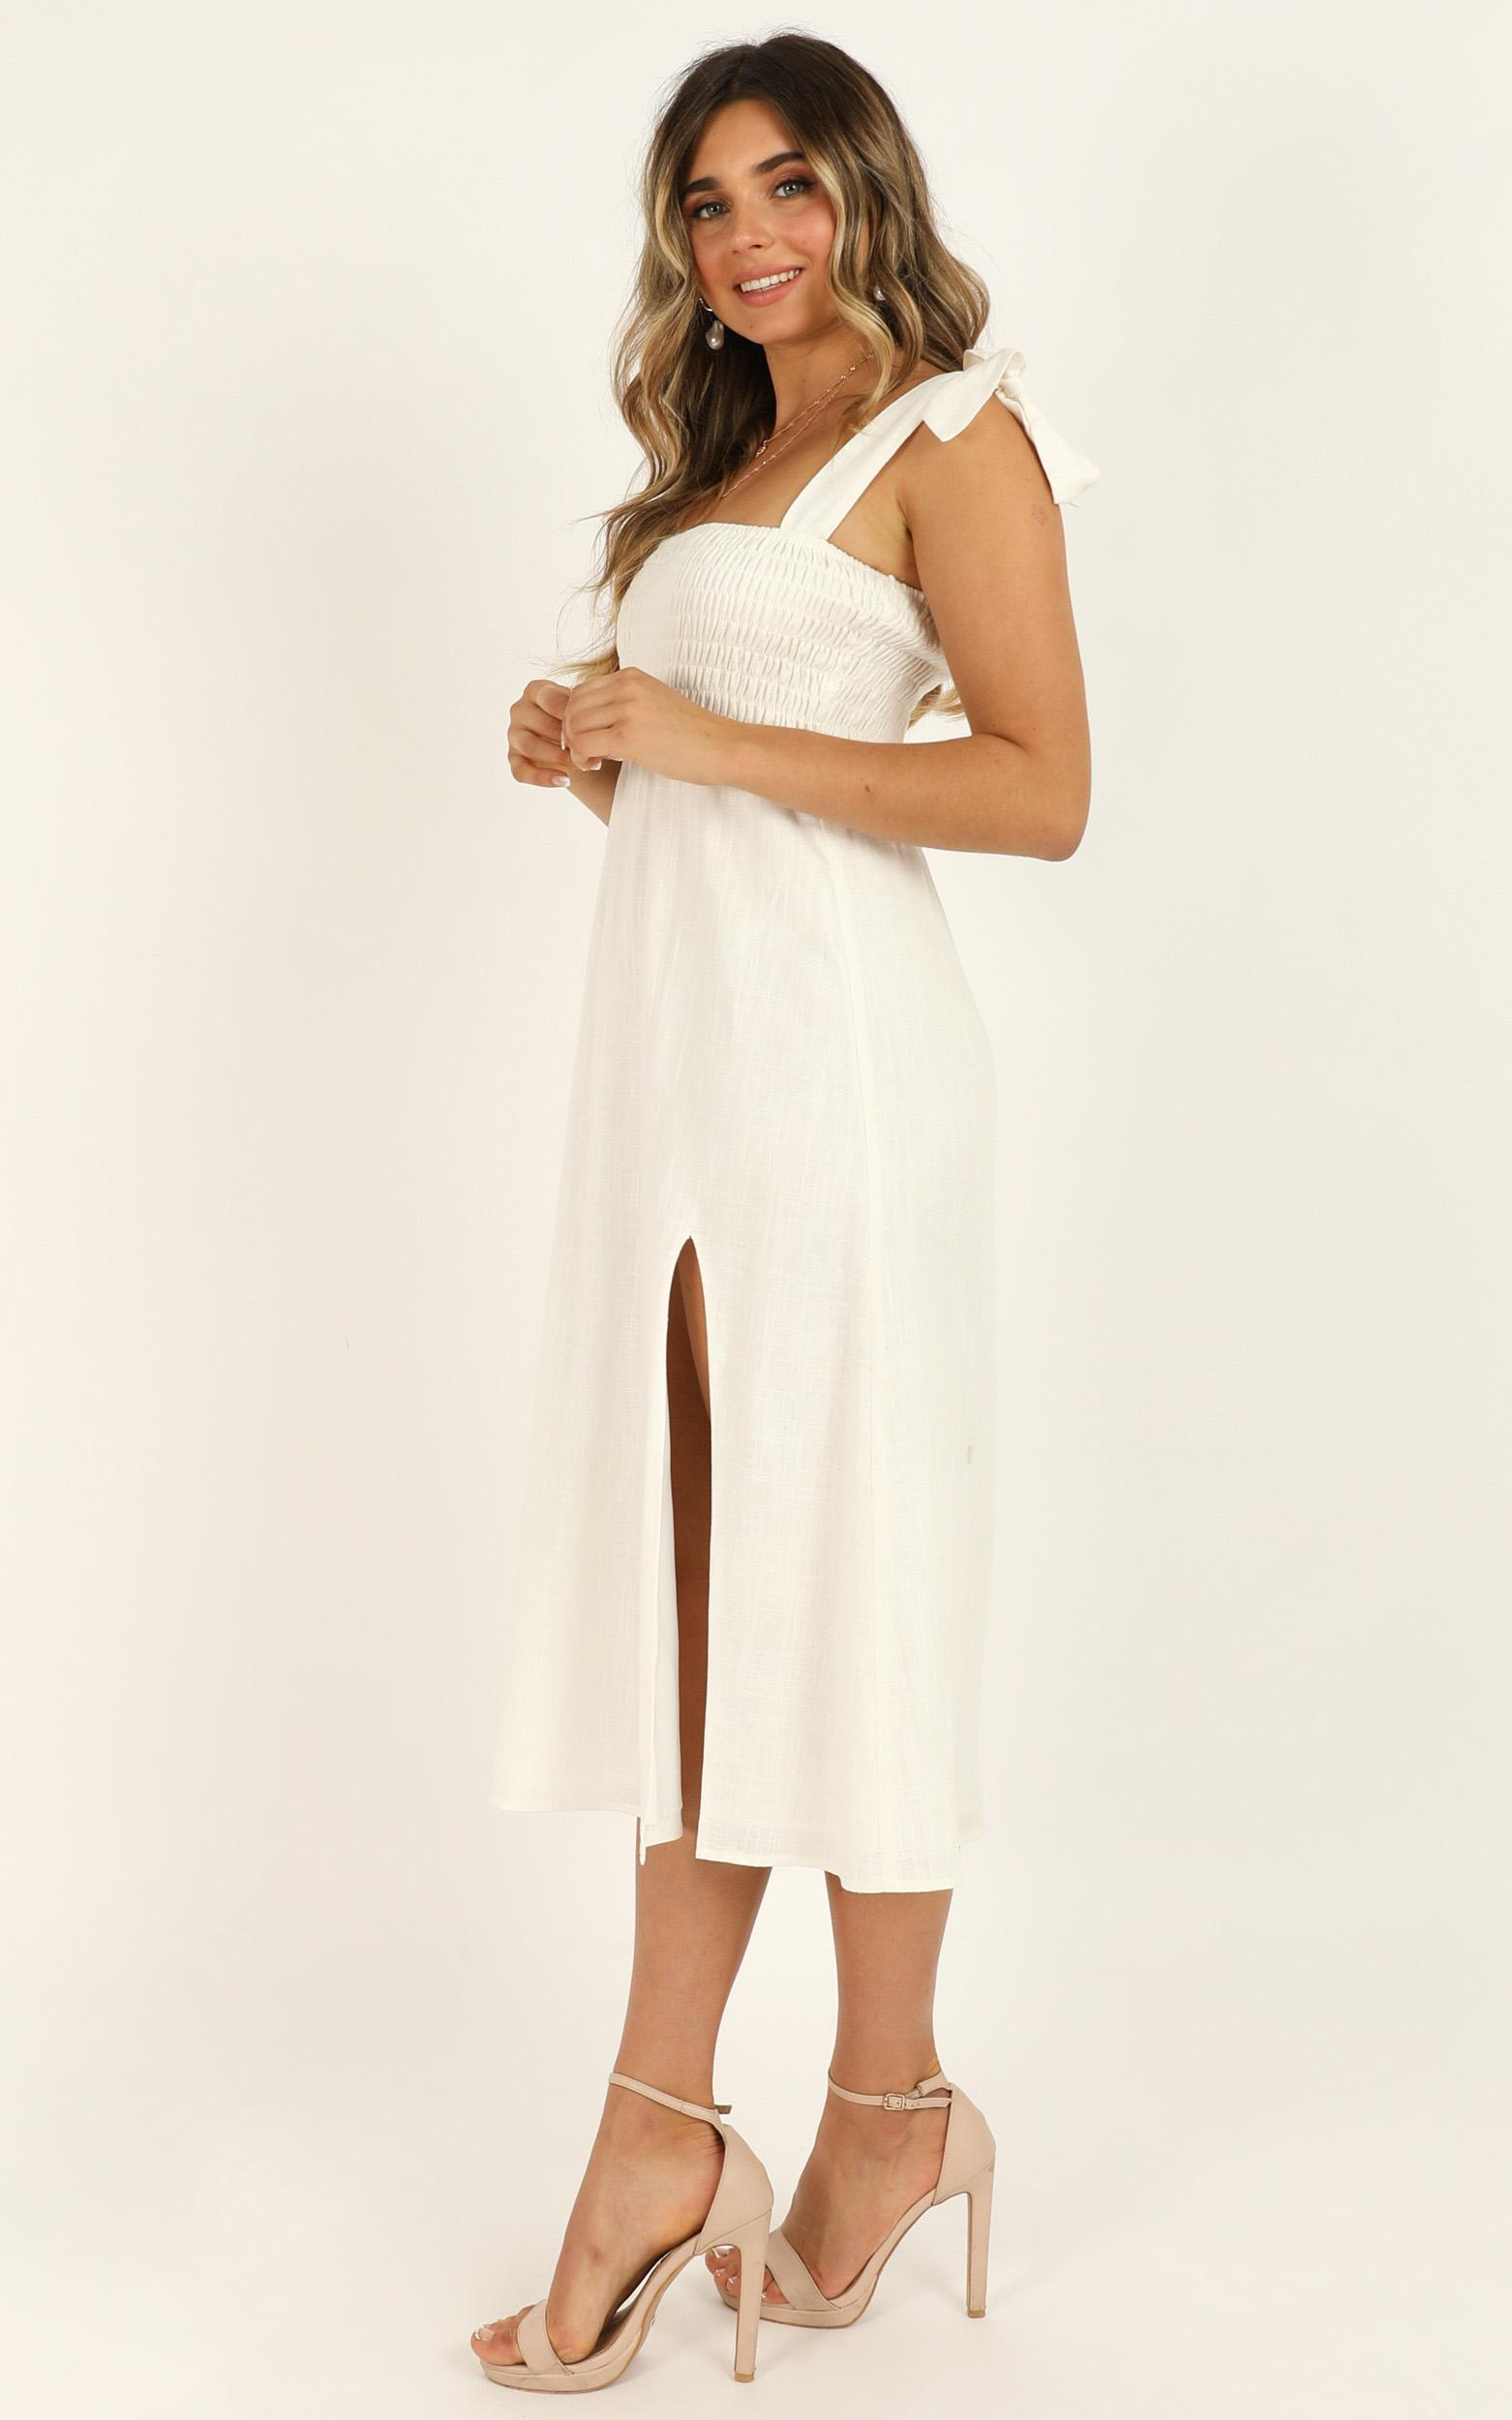 Untamed Dress in white linen - 20 (XXXXL), White, hi-res image number null